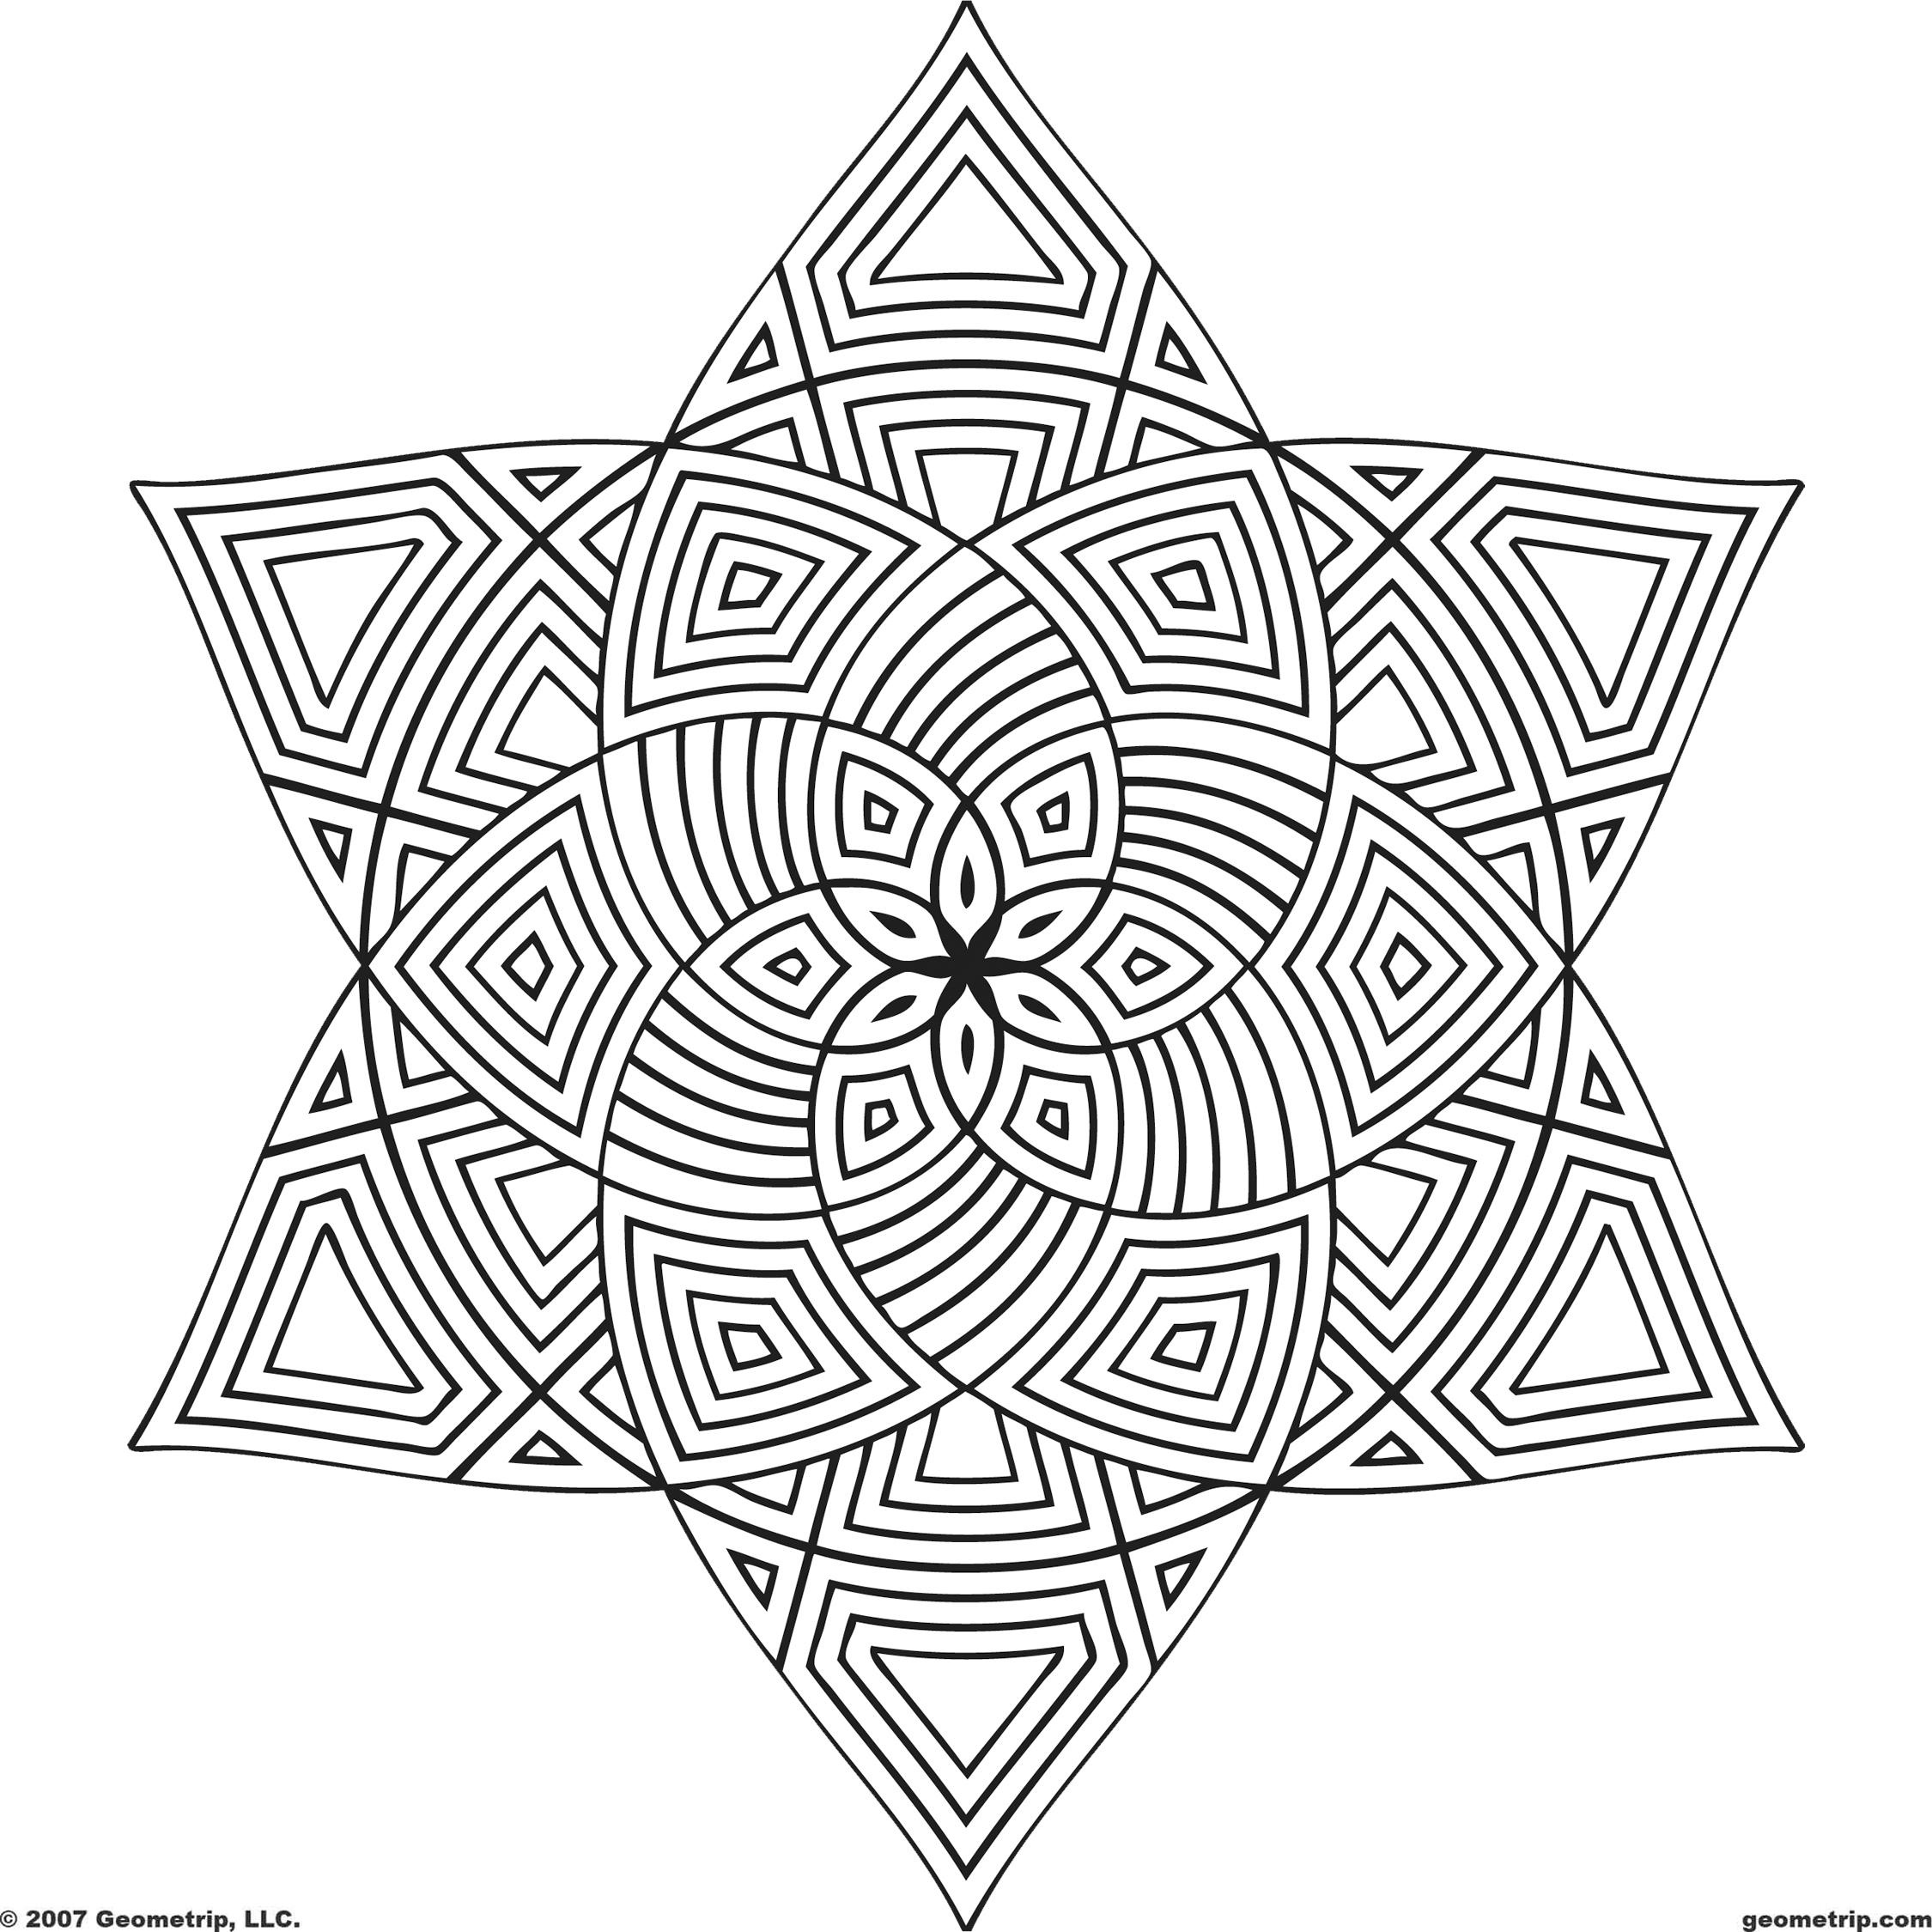 2250x2250 Geometric Design Coloring Pages To Download And Print For Free